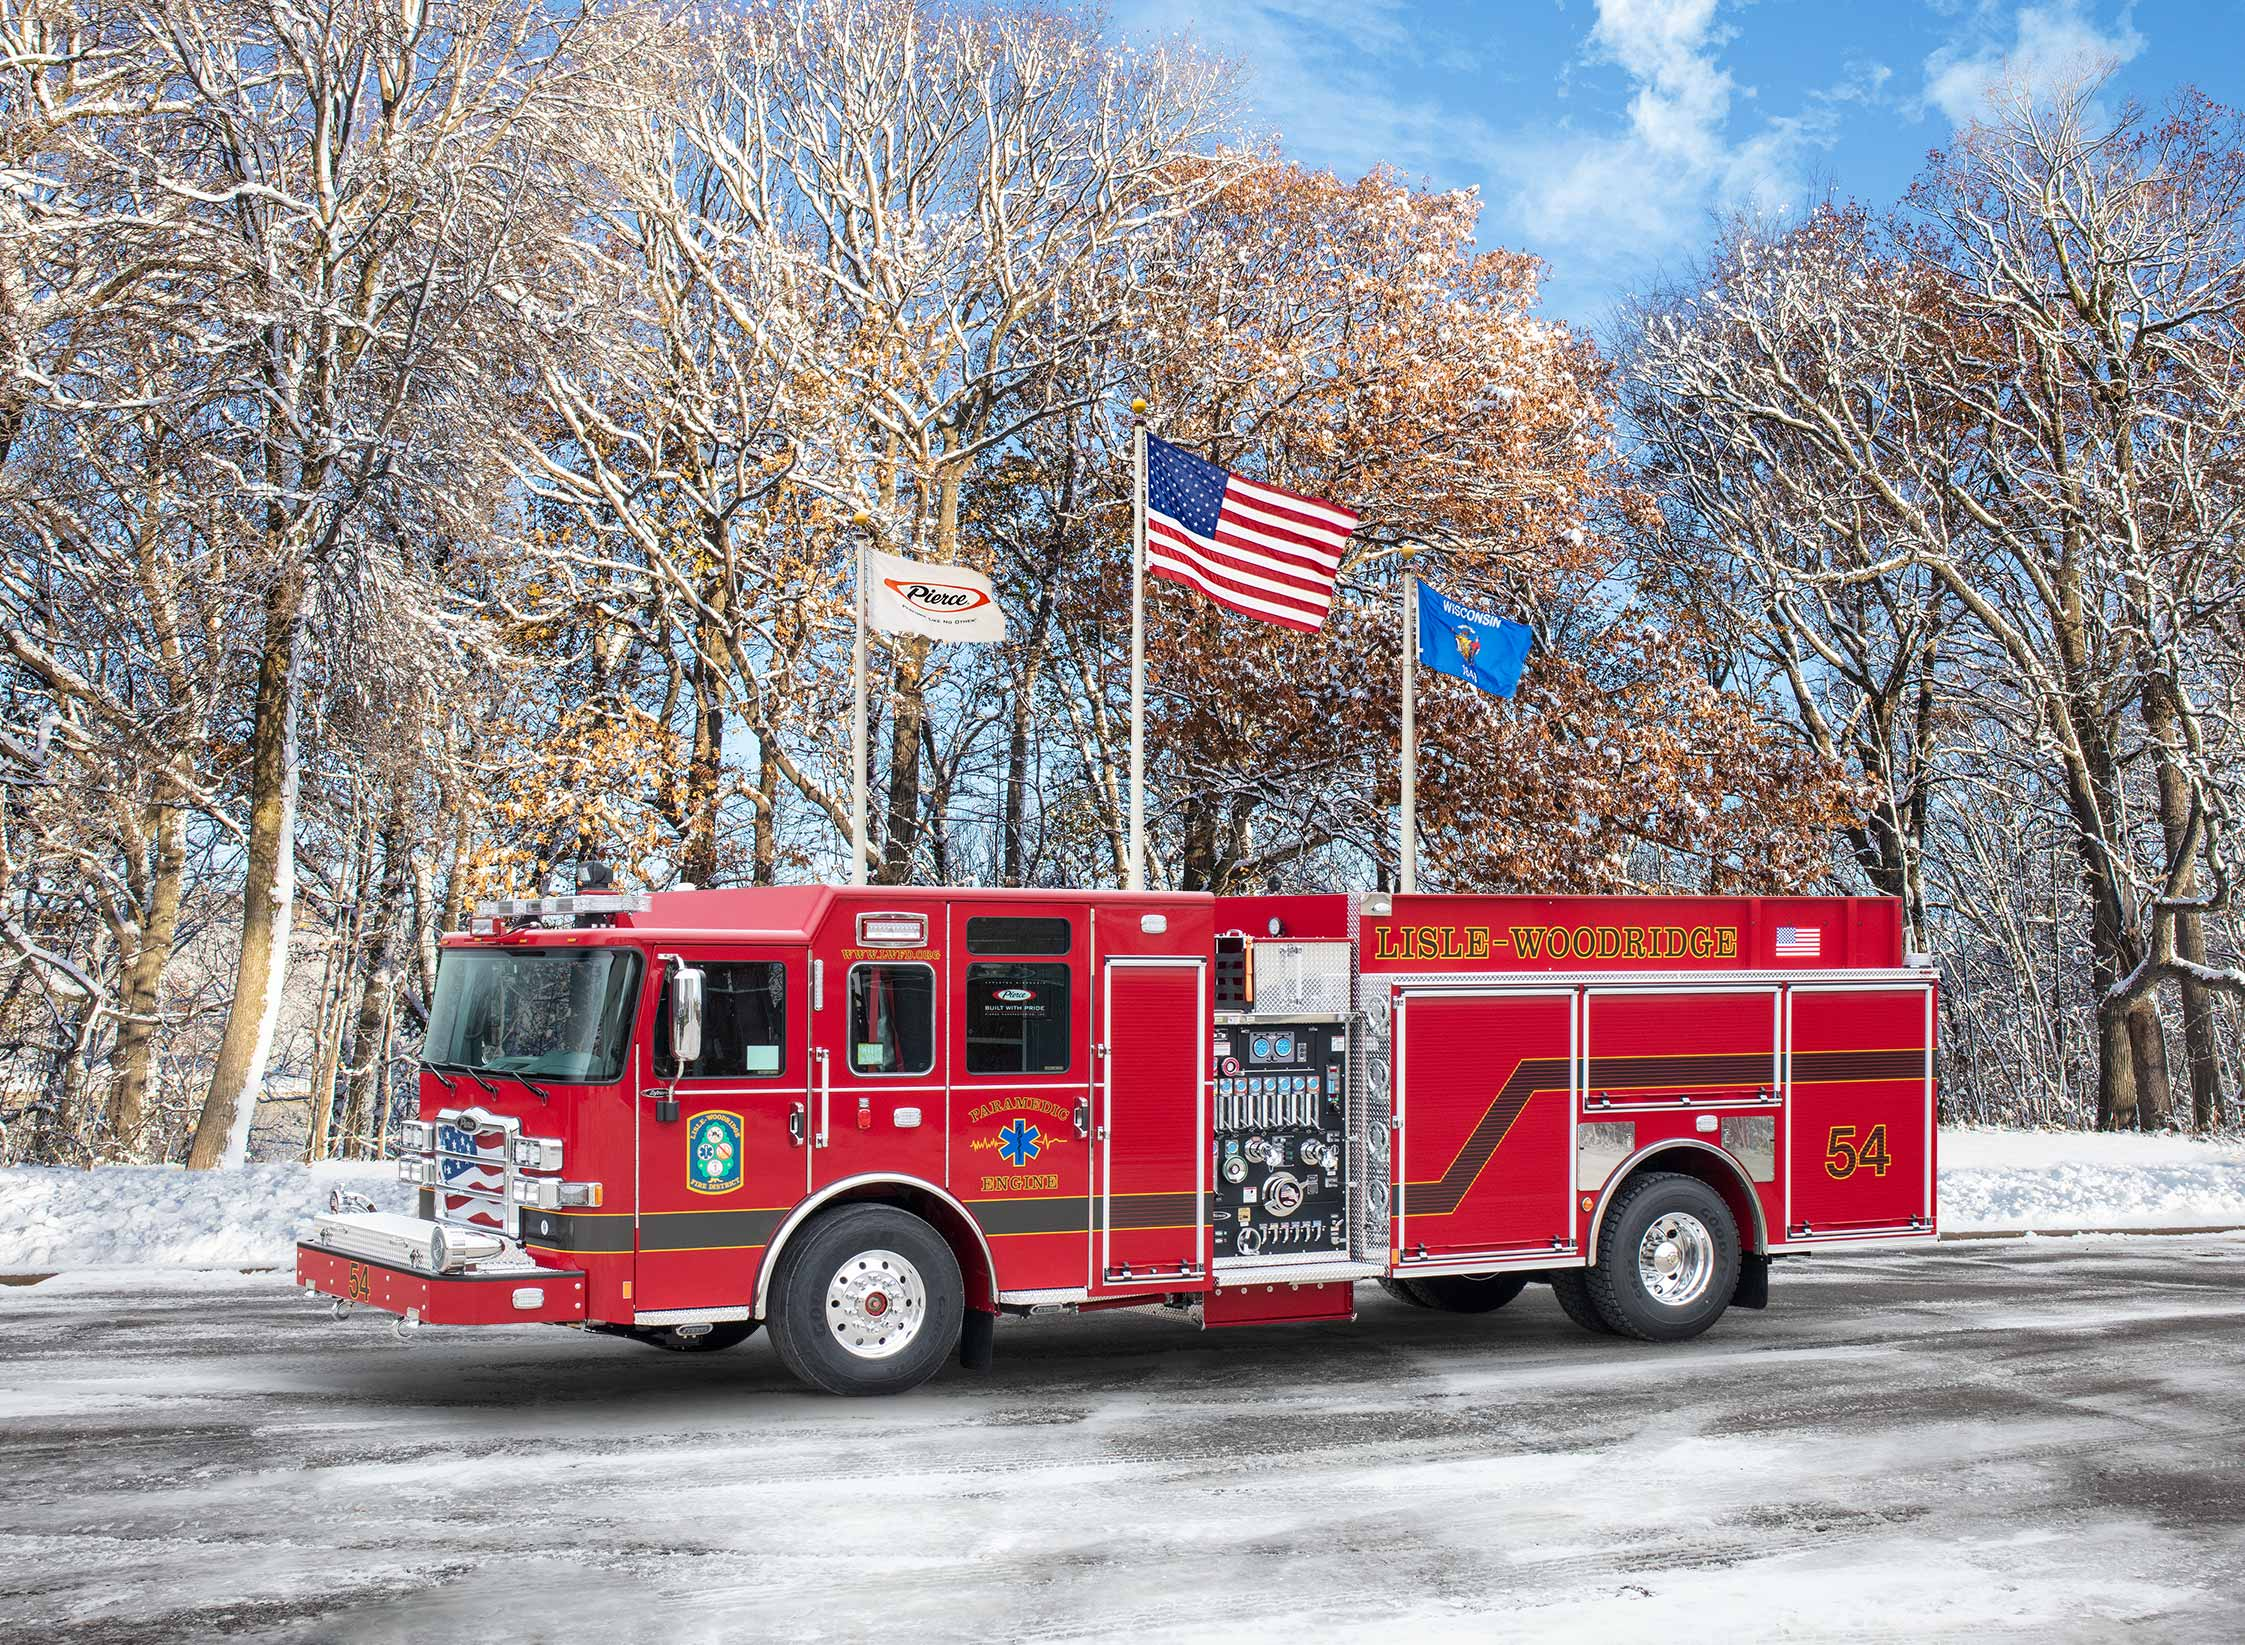 Lisle-Woodridge Fire District - Pumper